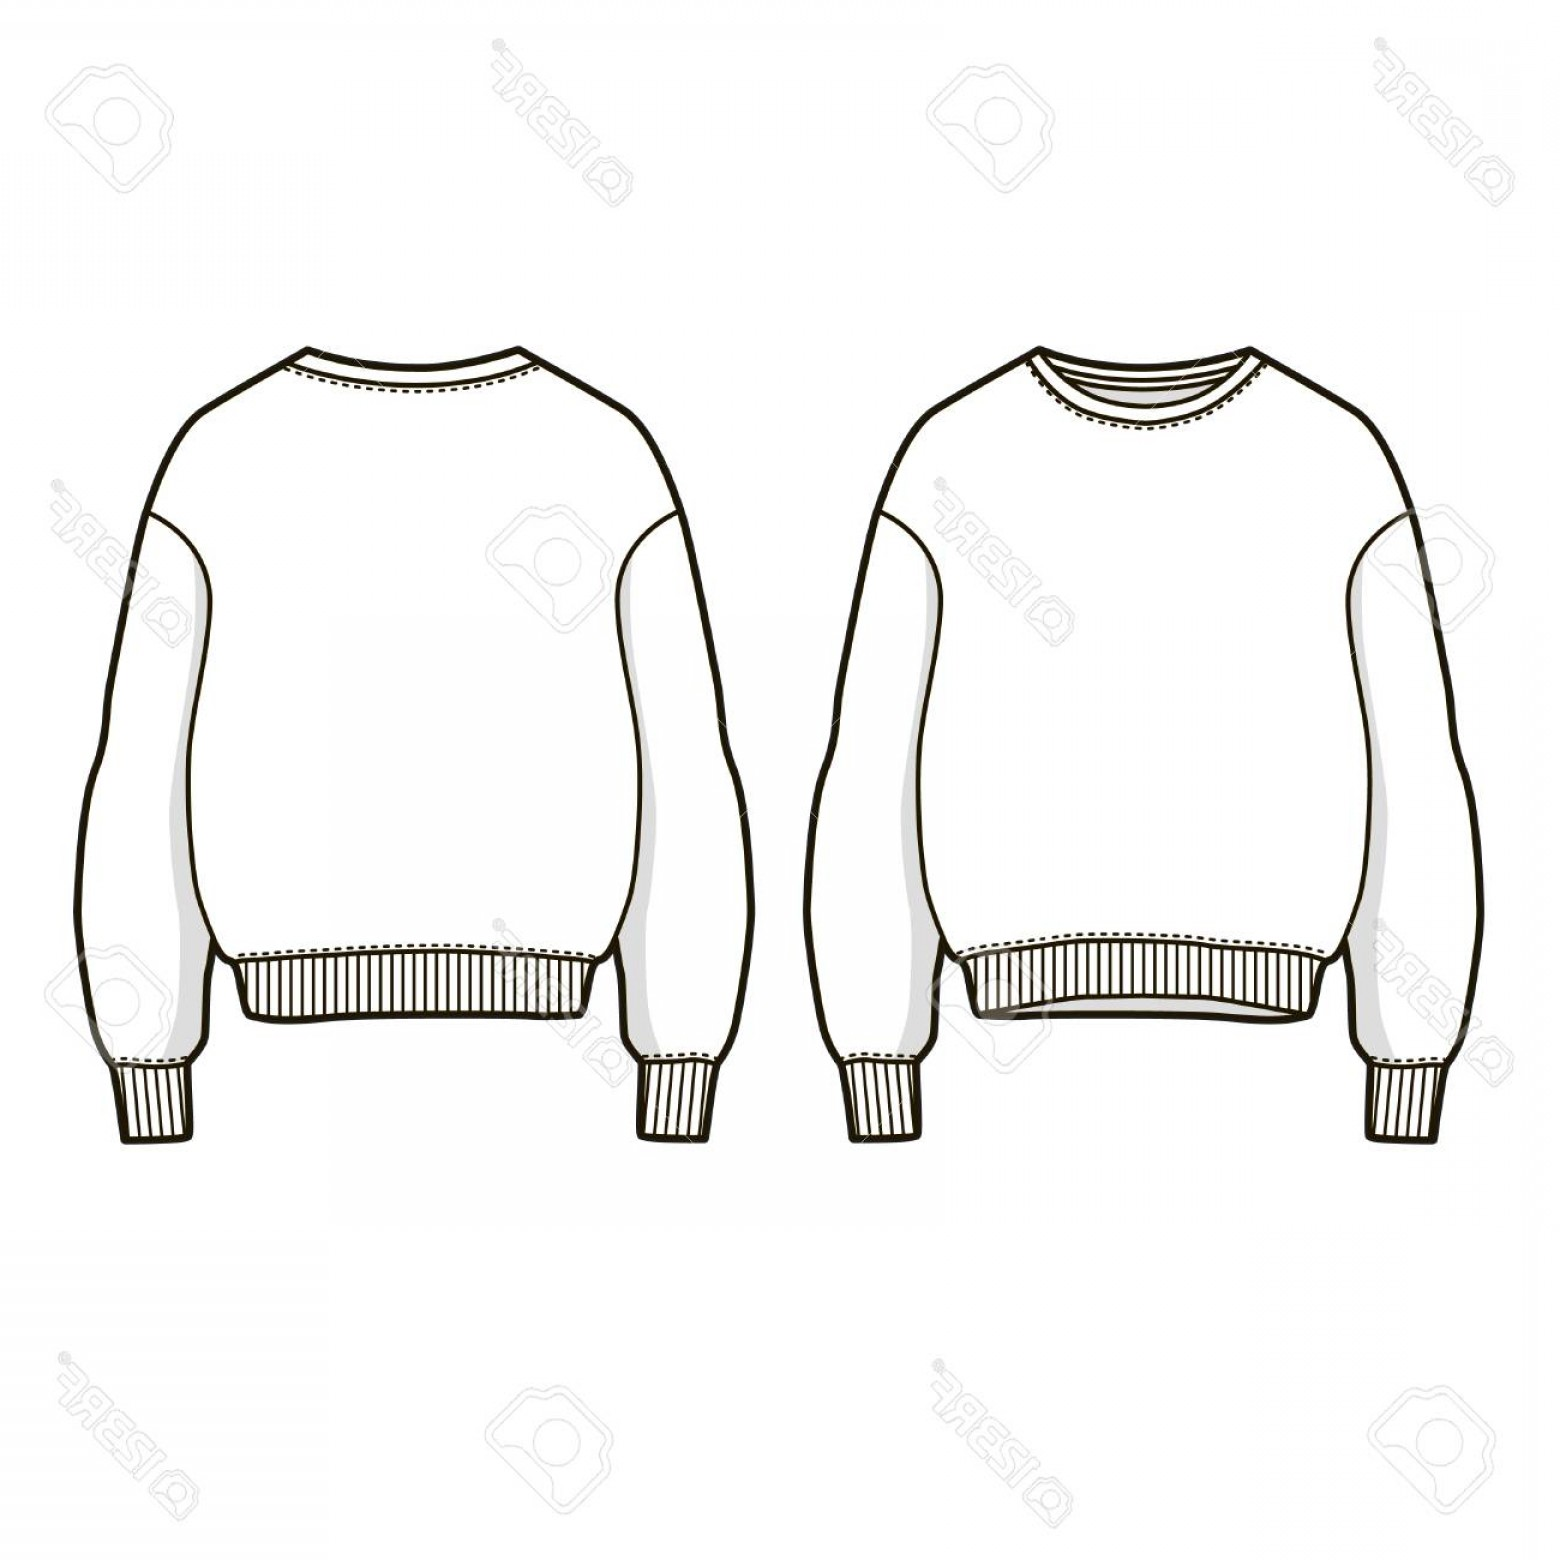 Sweatshirt Vector Template: Photostock Vector Trendy Women Sweatshirt Vector Sweatshirt Template Front And Back View